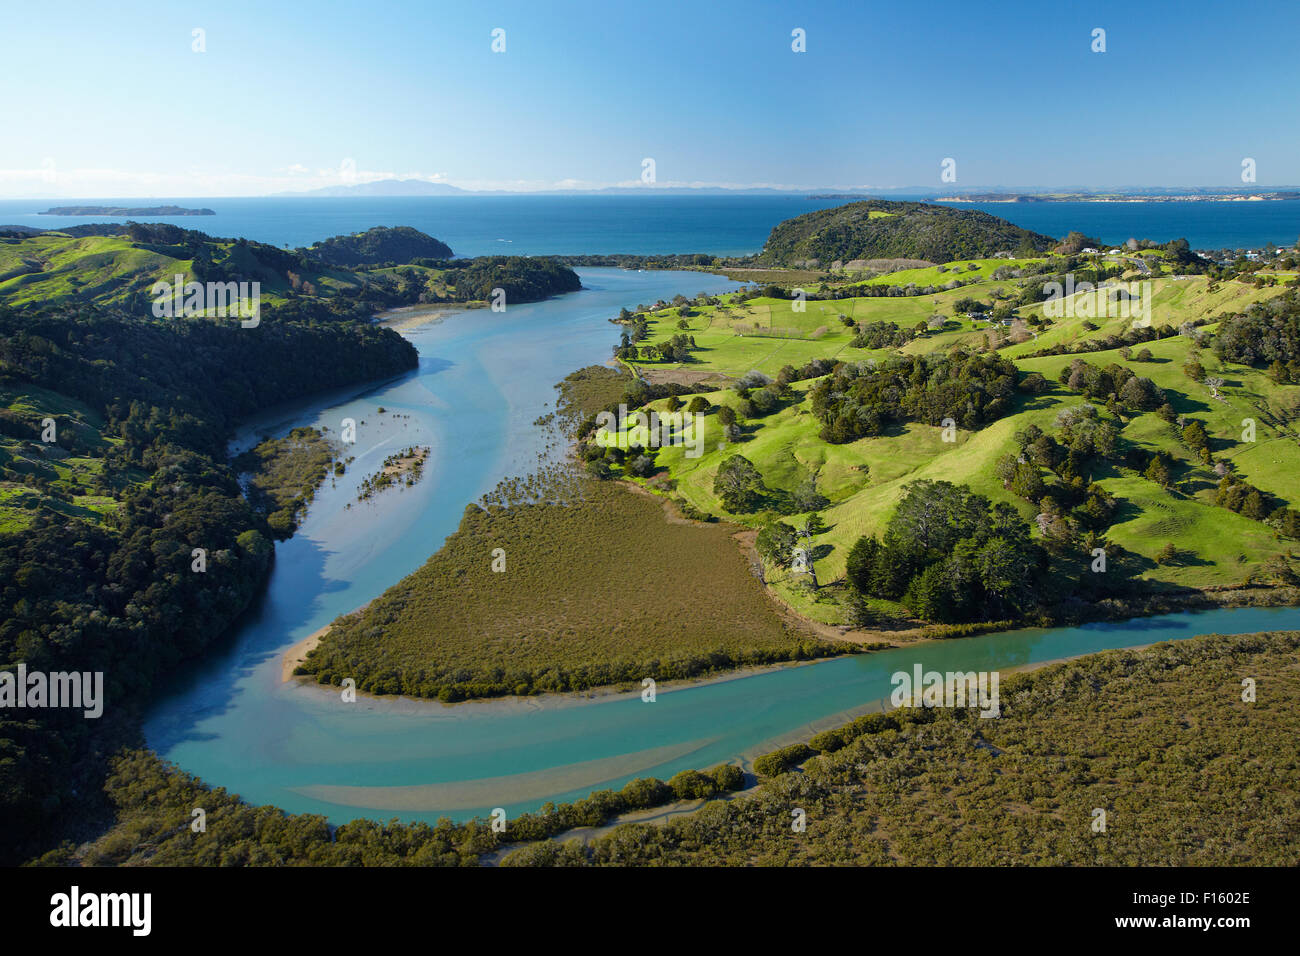 Puhoi River, North Auckland, North Island, New Zealand - aerial - Stock Image